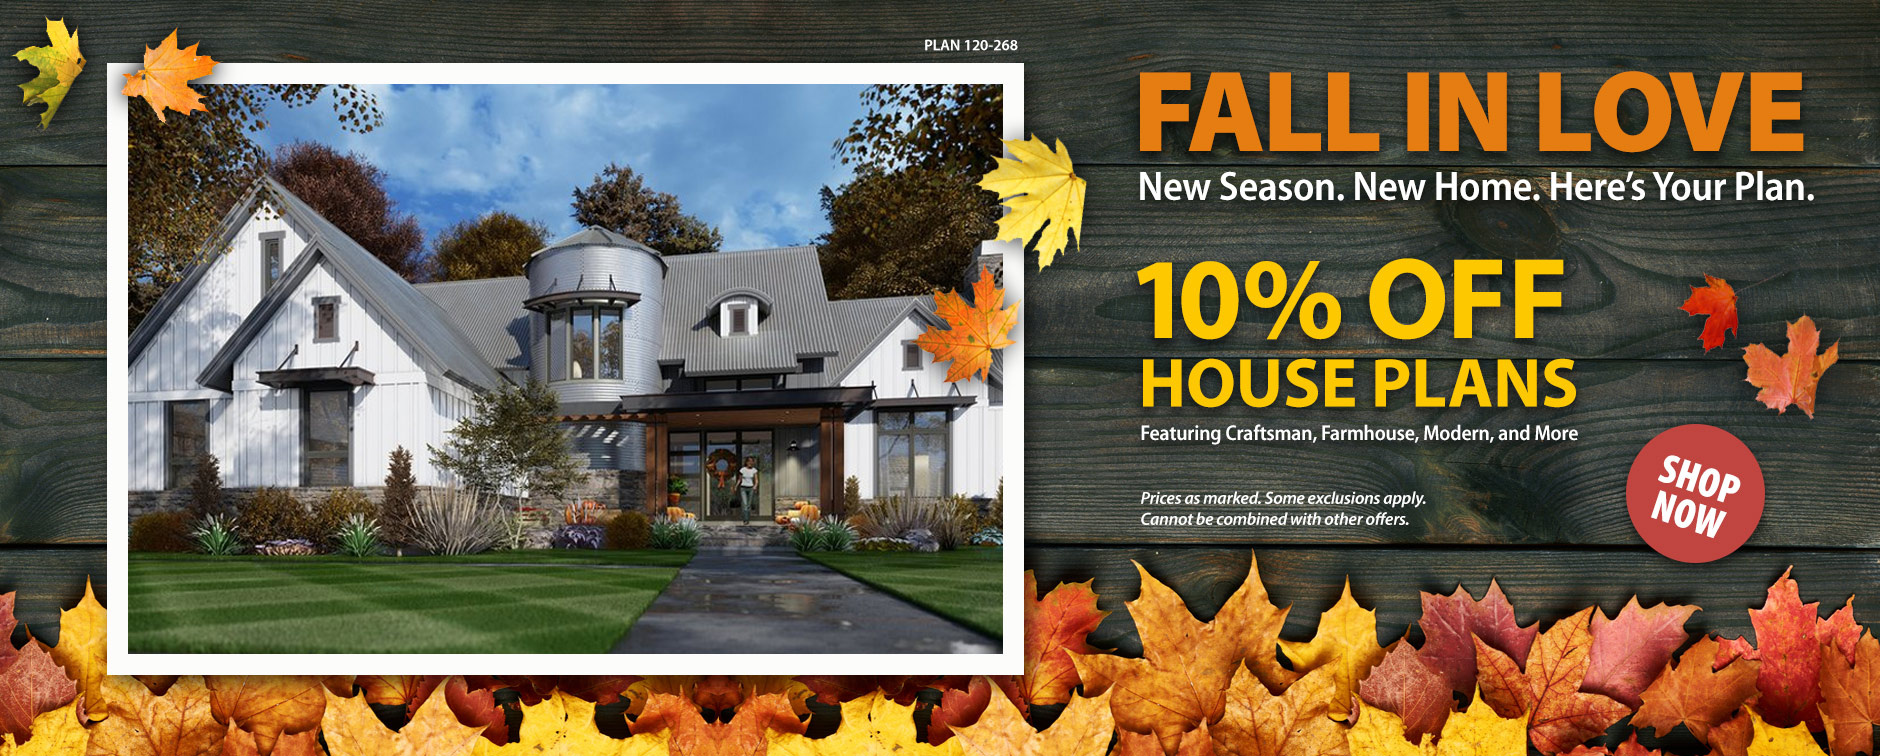 10% Off Thousands of Dream House Plans